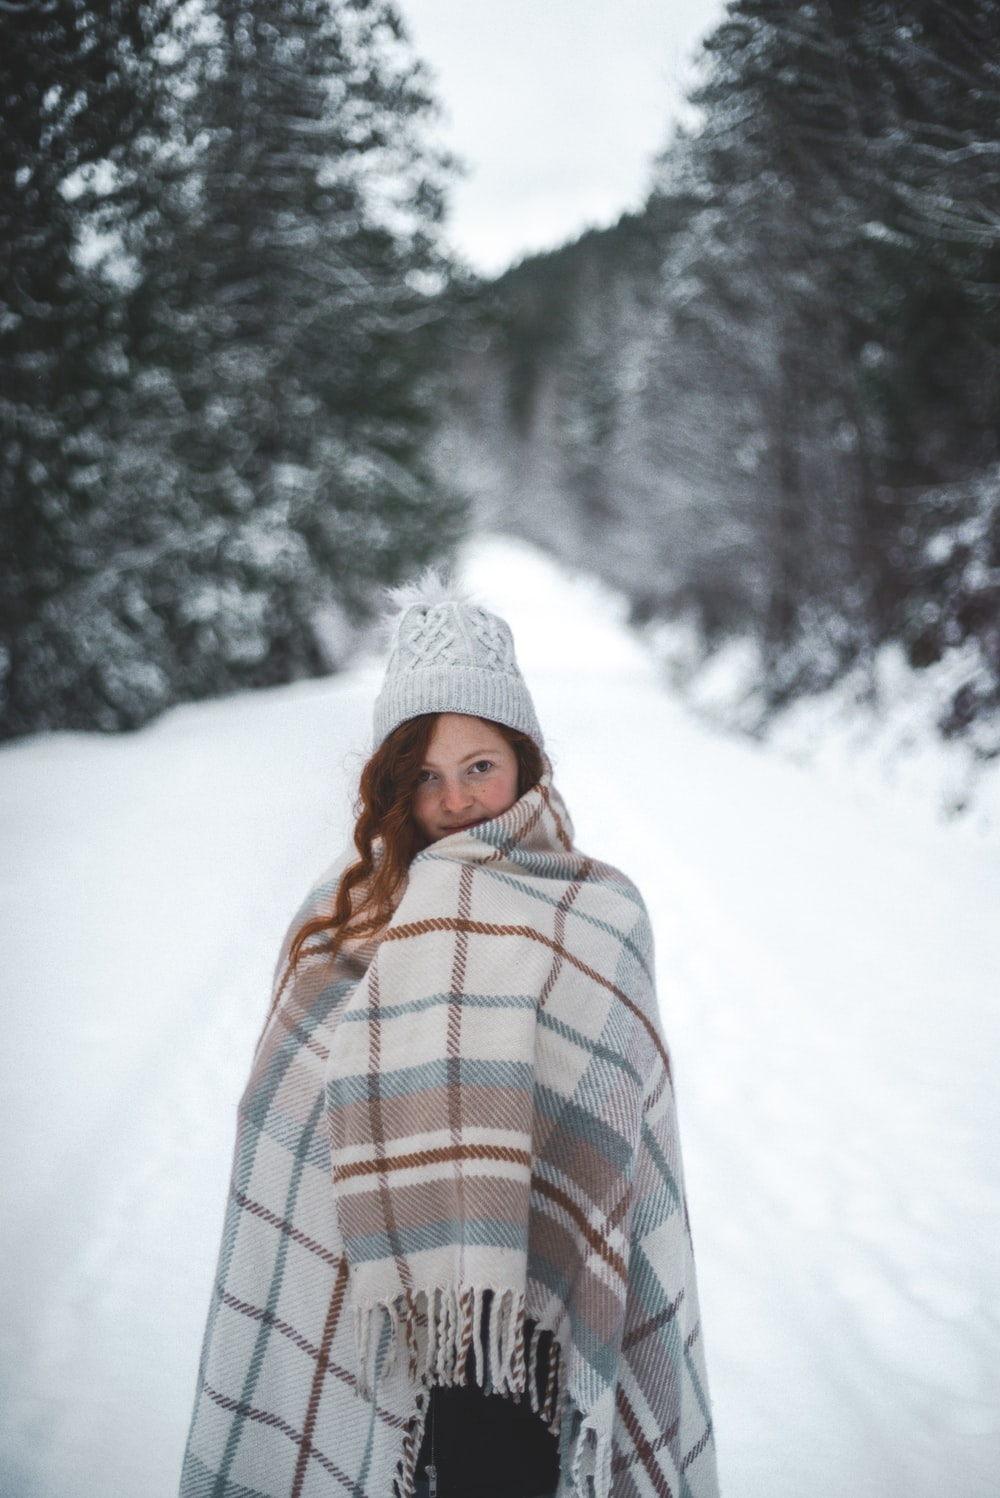 woman in white knit cap standing on snow covered ground during daytime